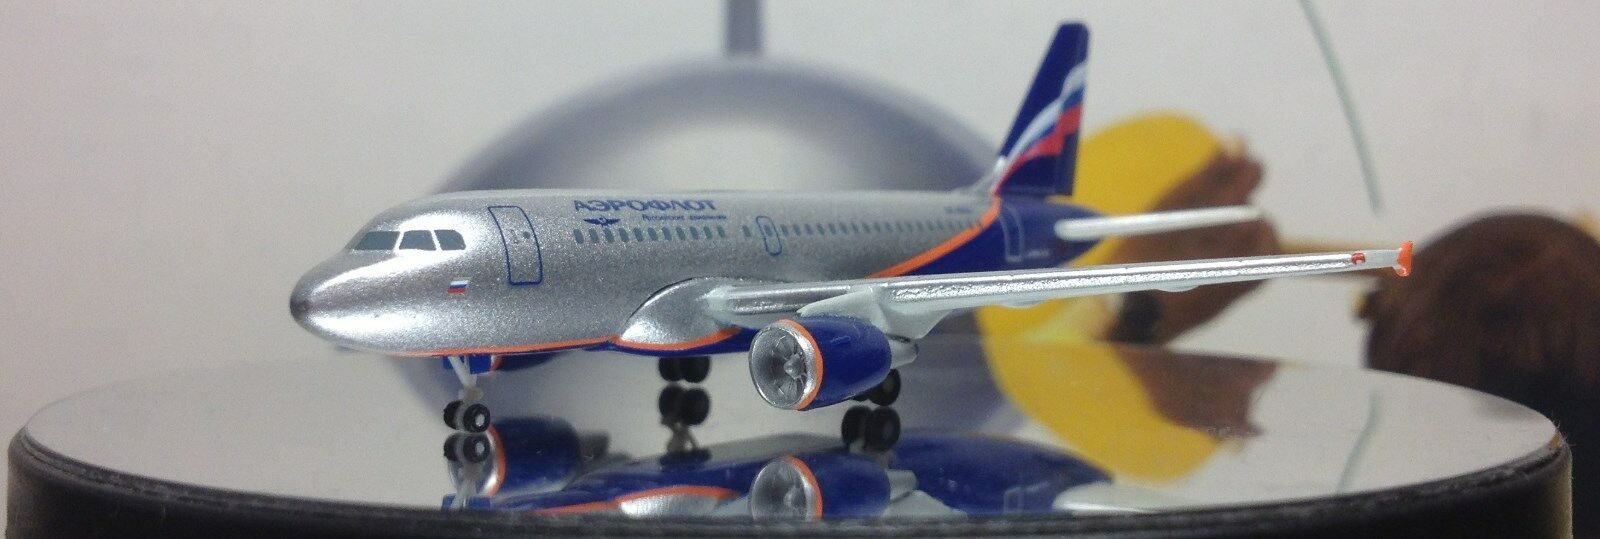 Herpa wings 509091 Aeroflot A319 Scale 1 500